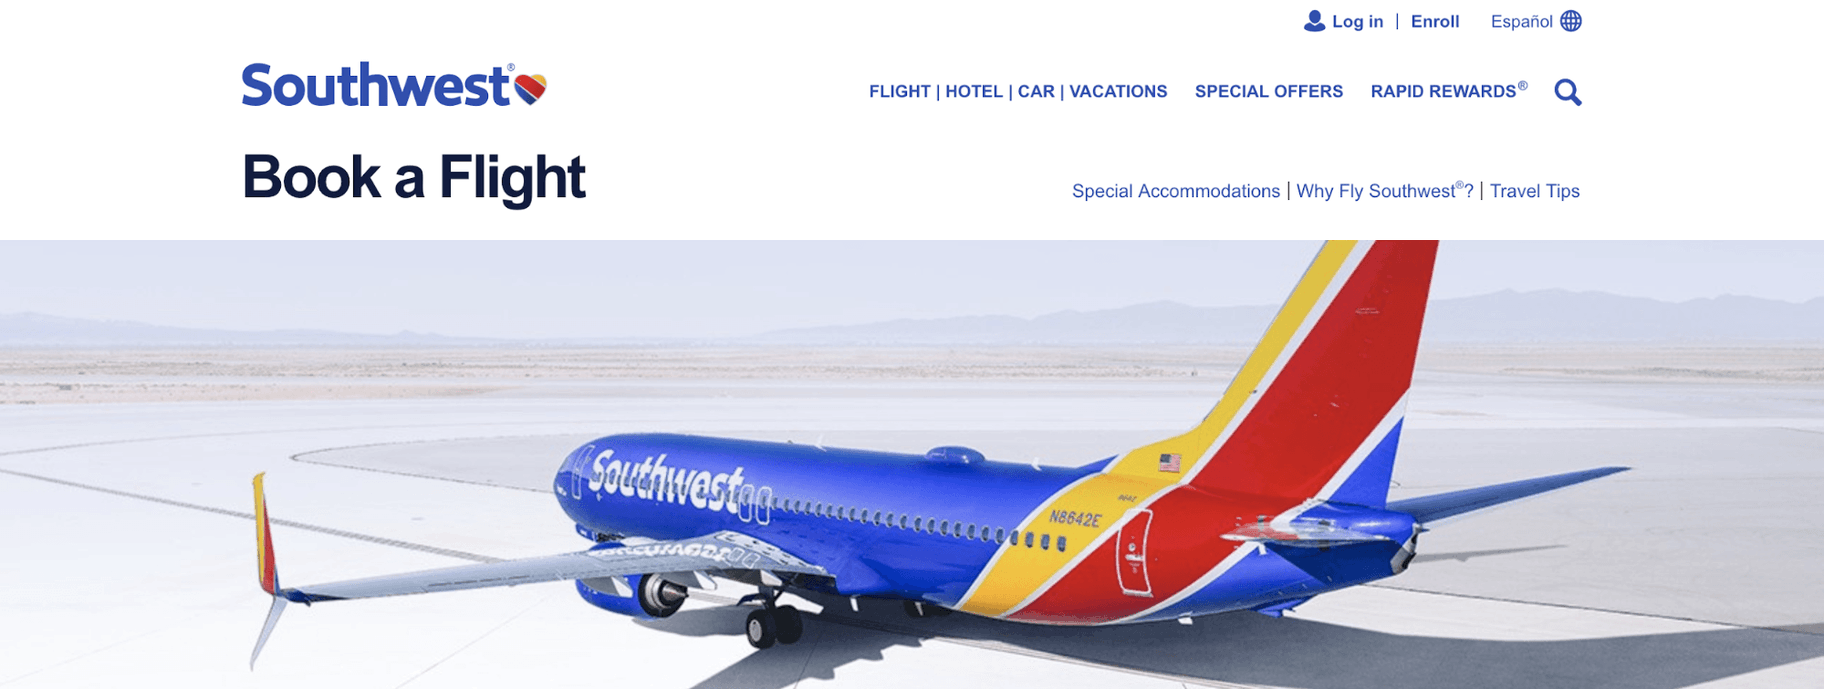 Southwest Airlines Vision Statement